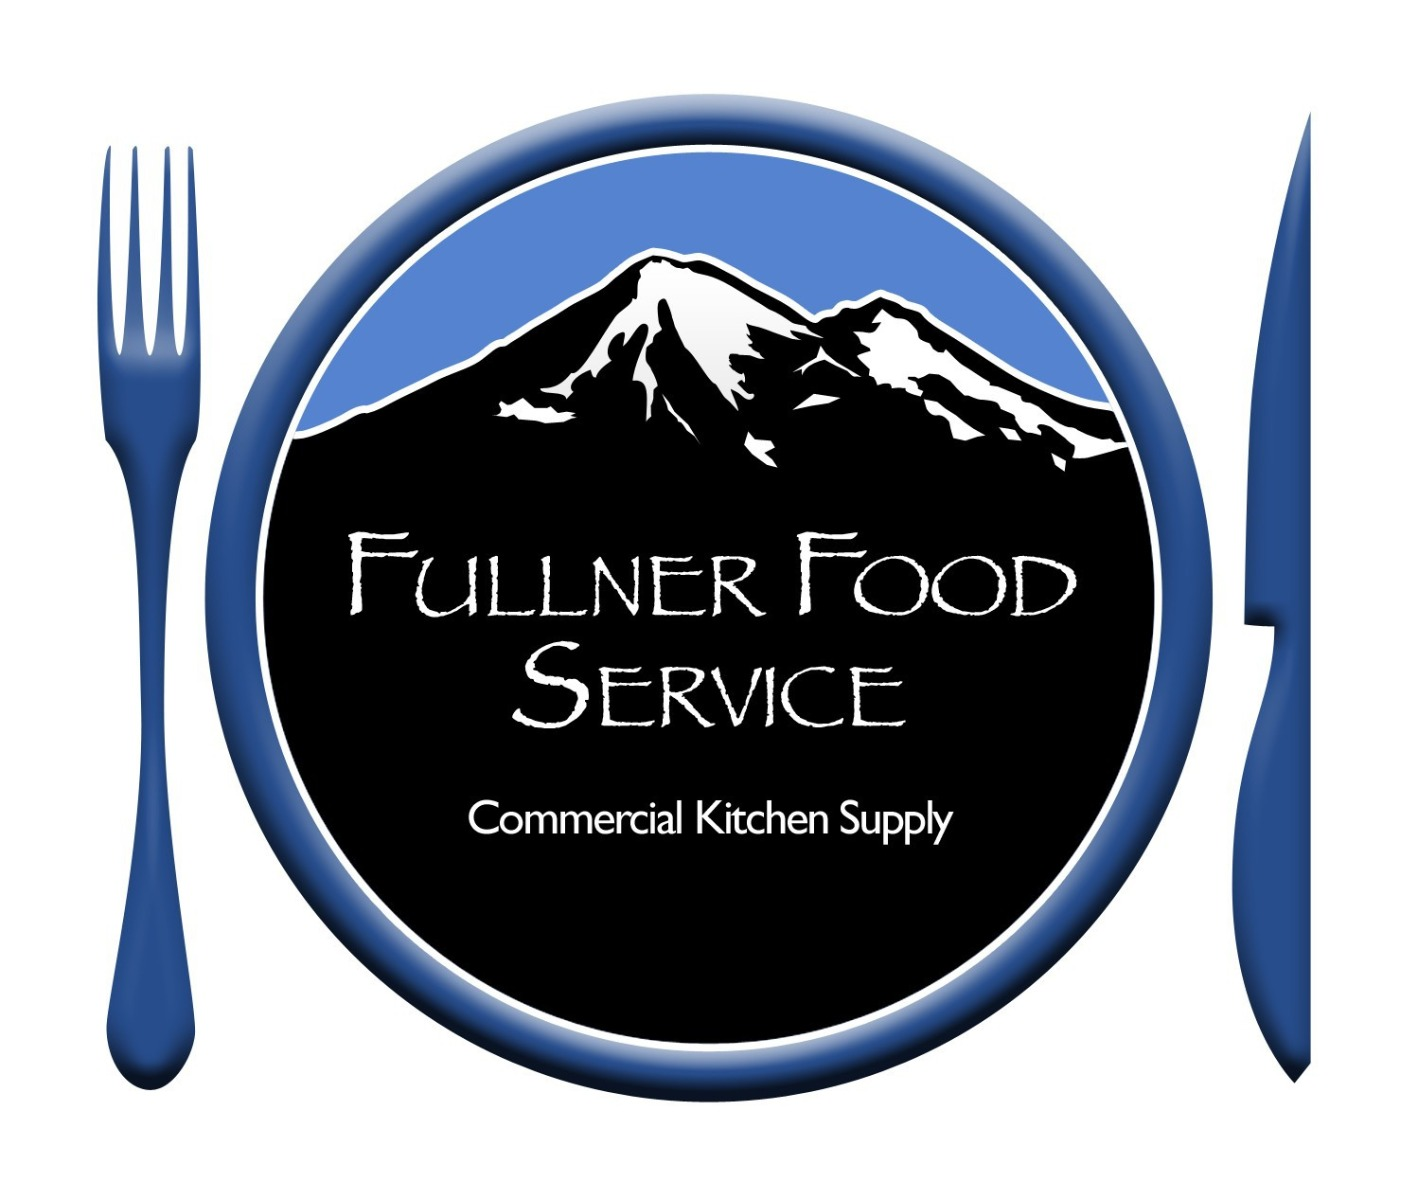 Learn More About Fullner Food Service: